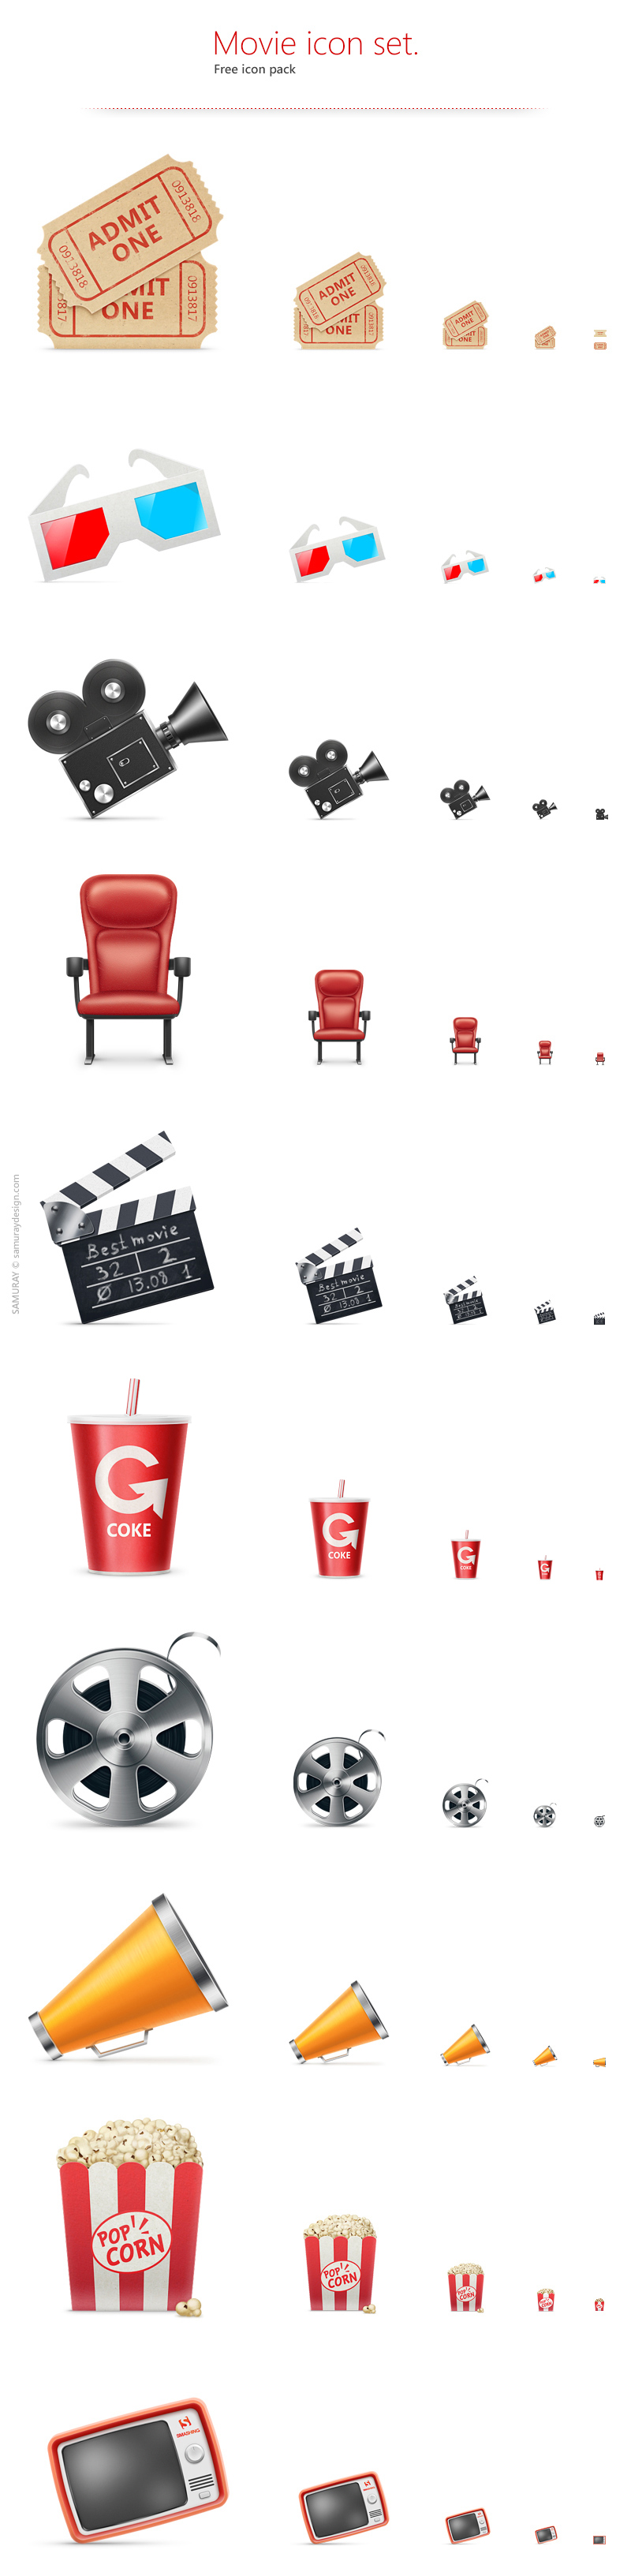 Free Movie Icon Set